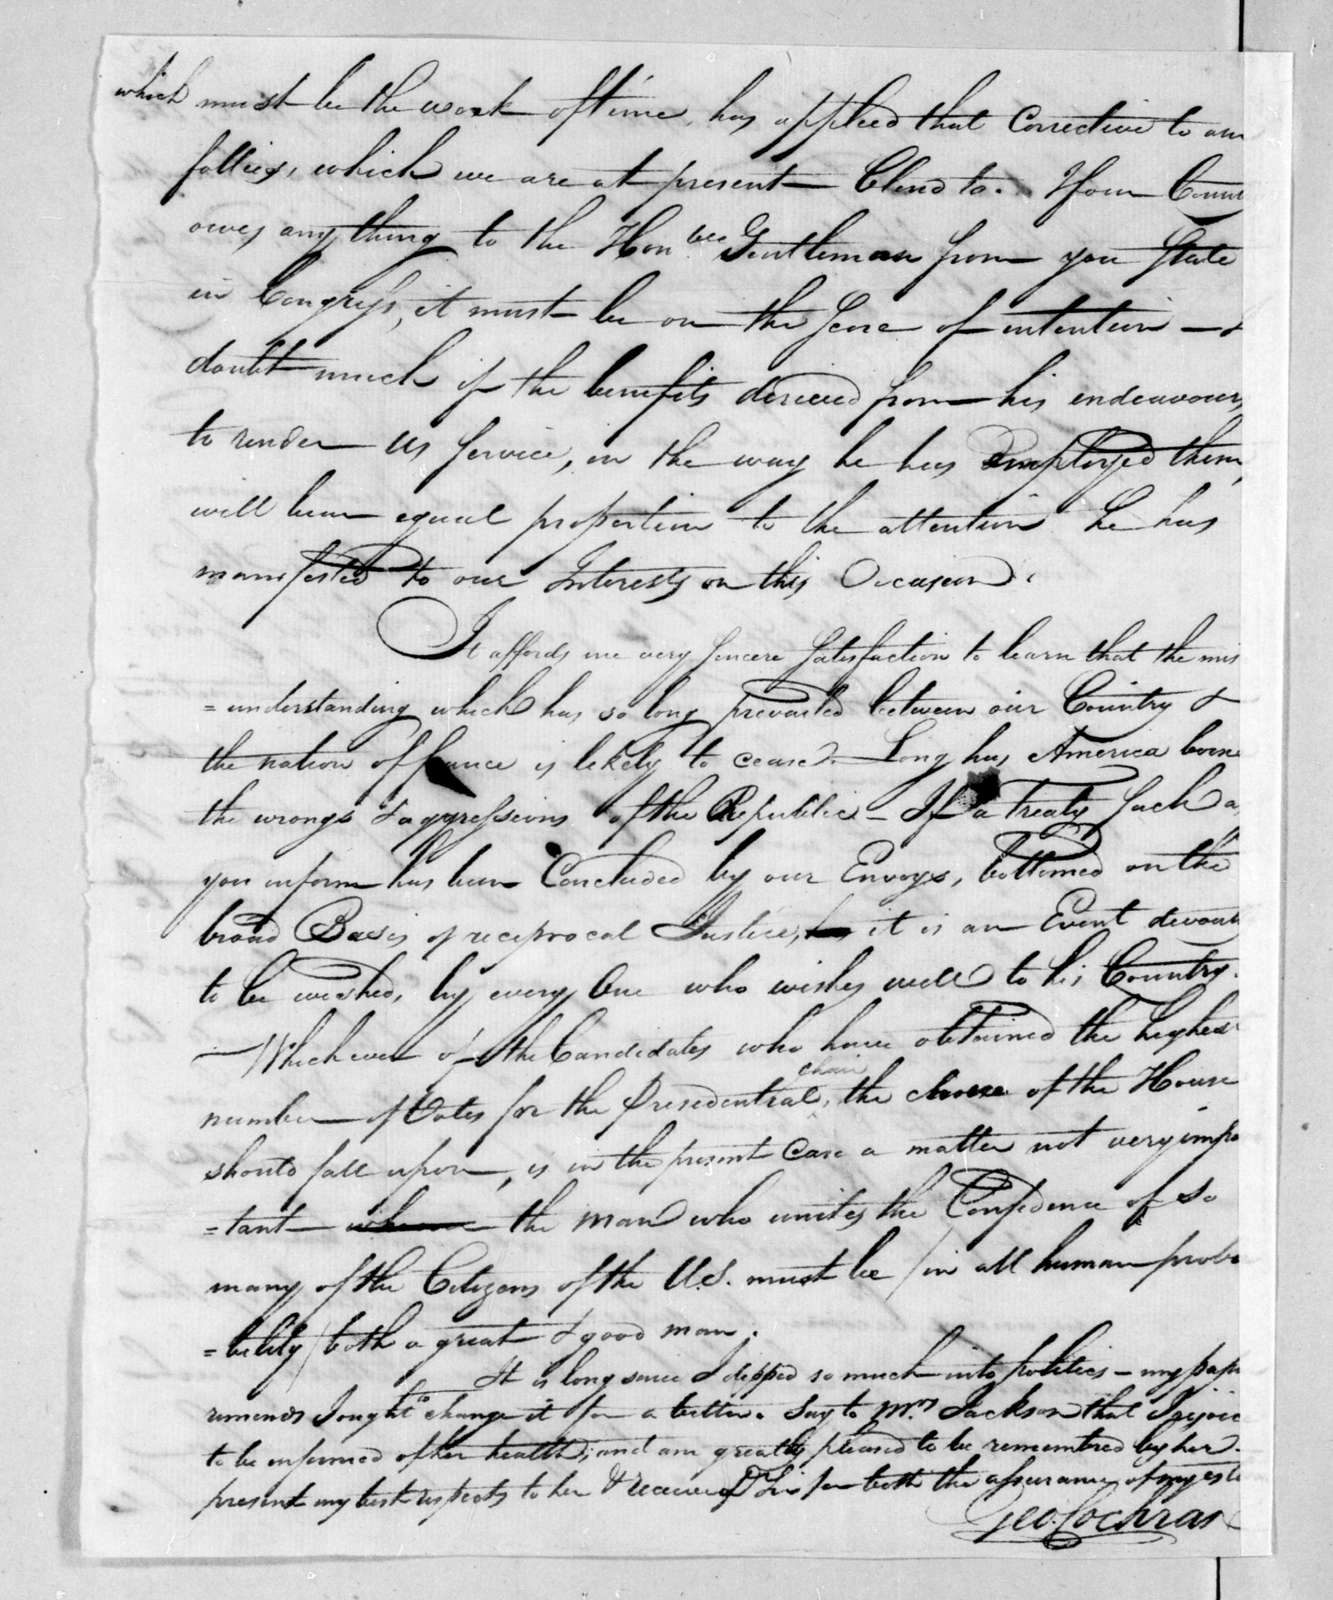 George Cochran to Unknown, March 26, 1801